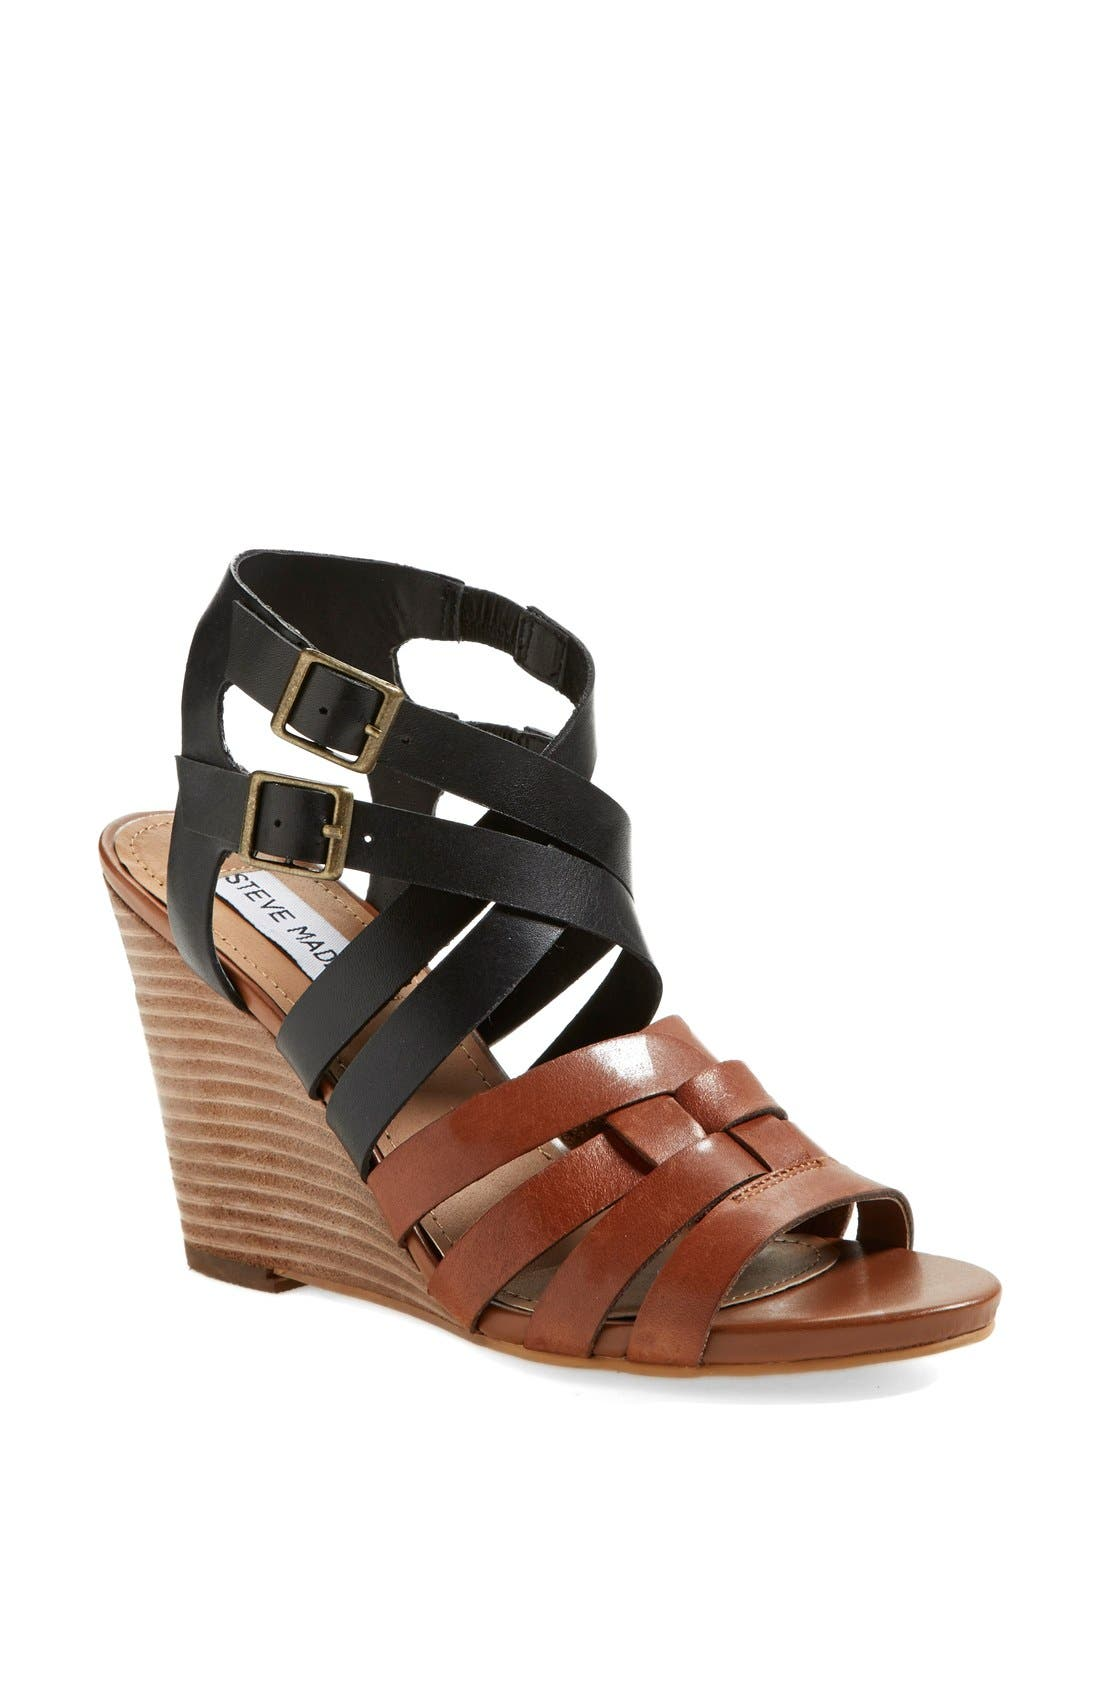 Alternate Image 1 Selected - Steve Madden 'Venis' Sandal